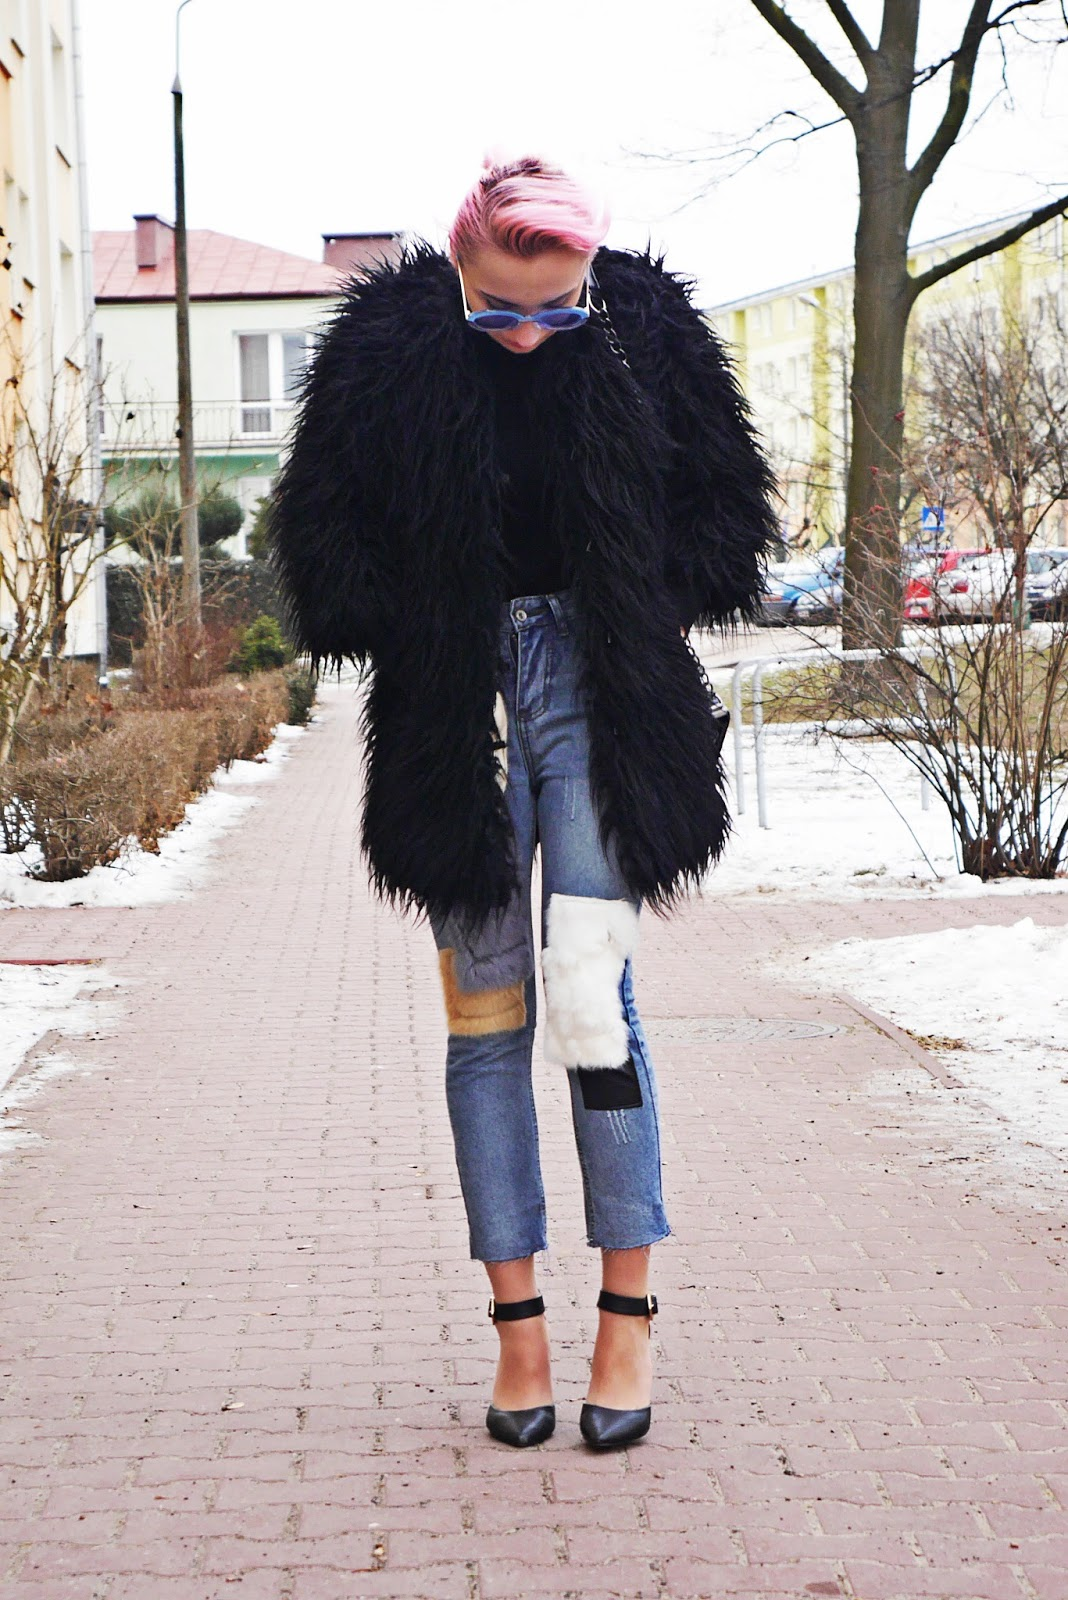 denim_jeans_fur_black_white_gray_karyn_020217